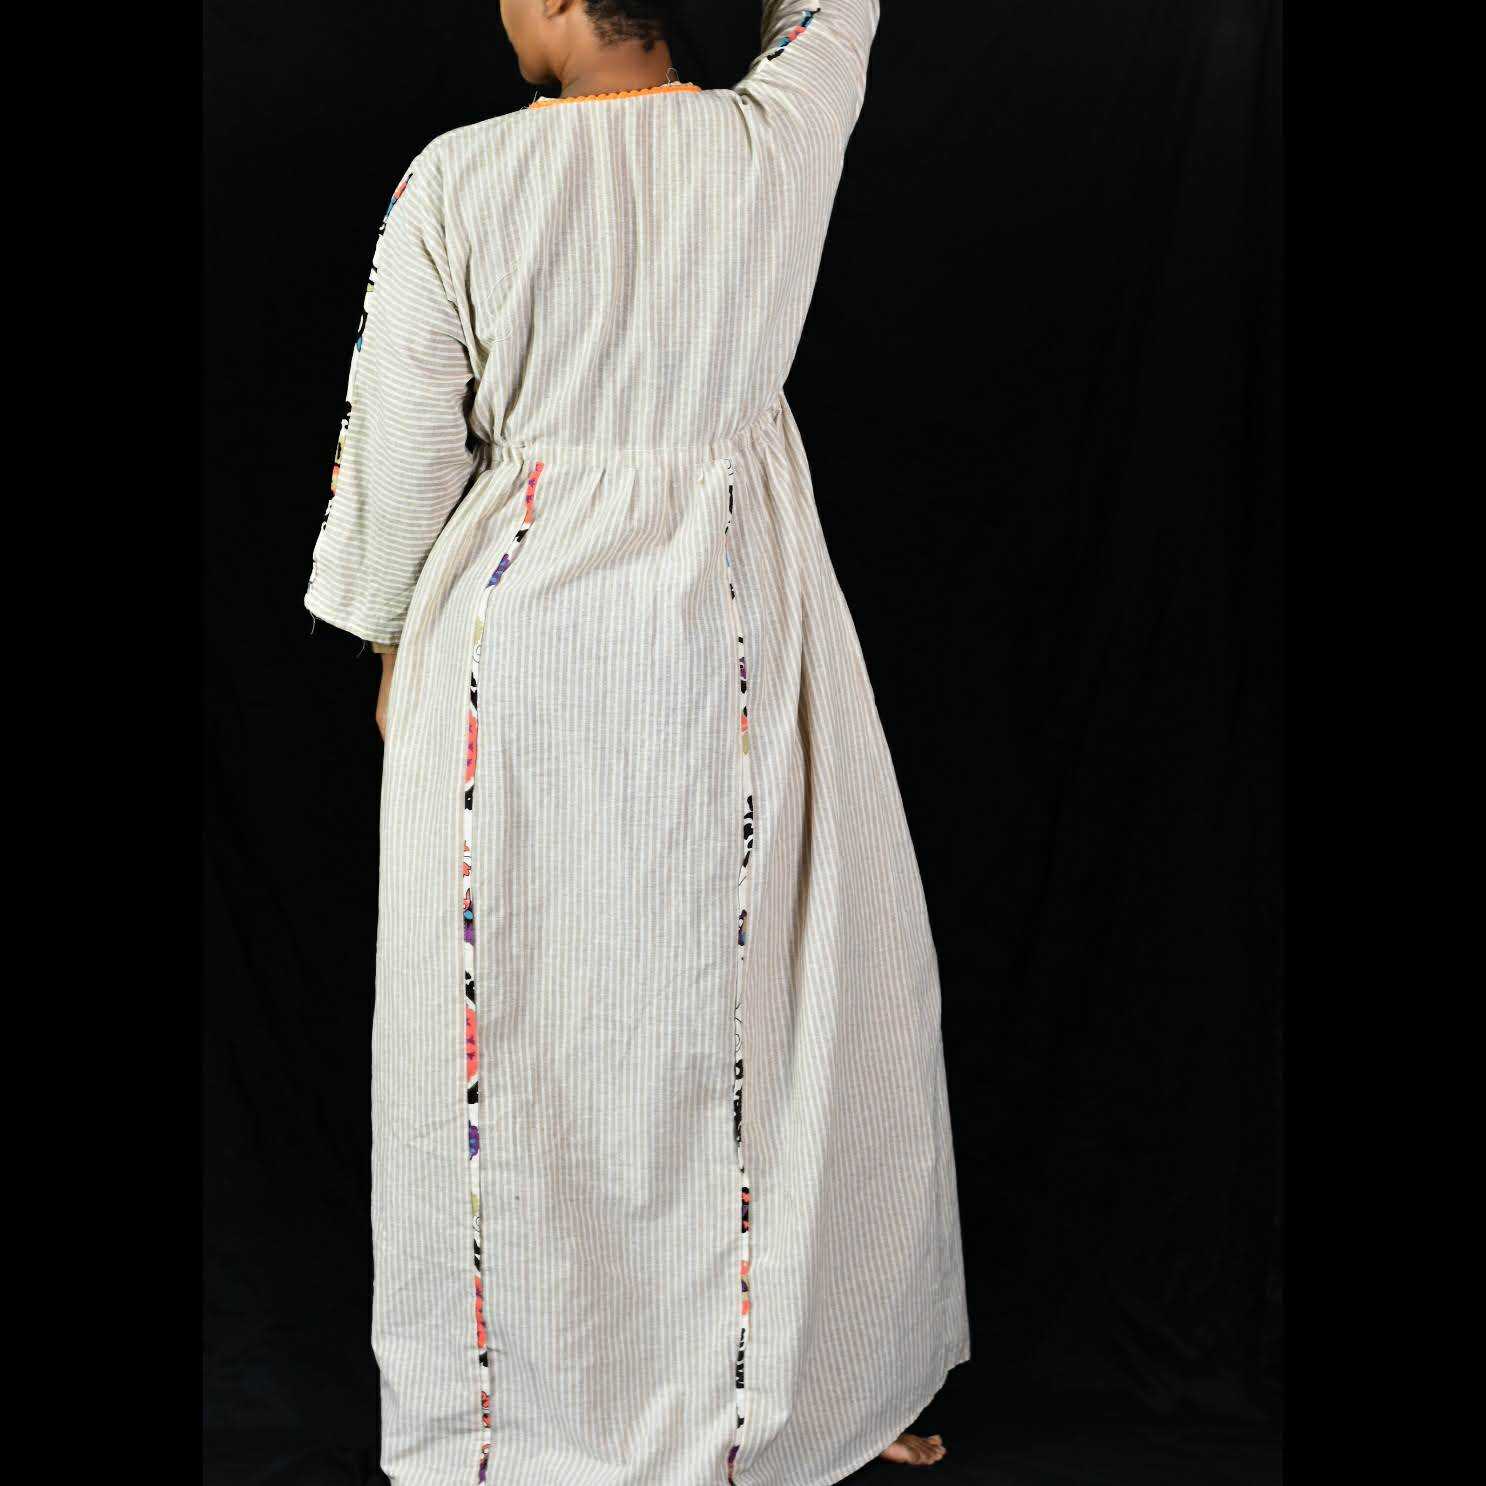 Vintage Kaftan Maxi Dress Size XL